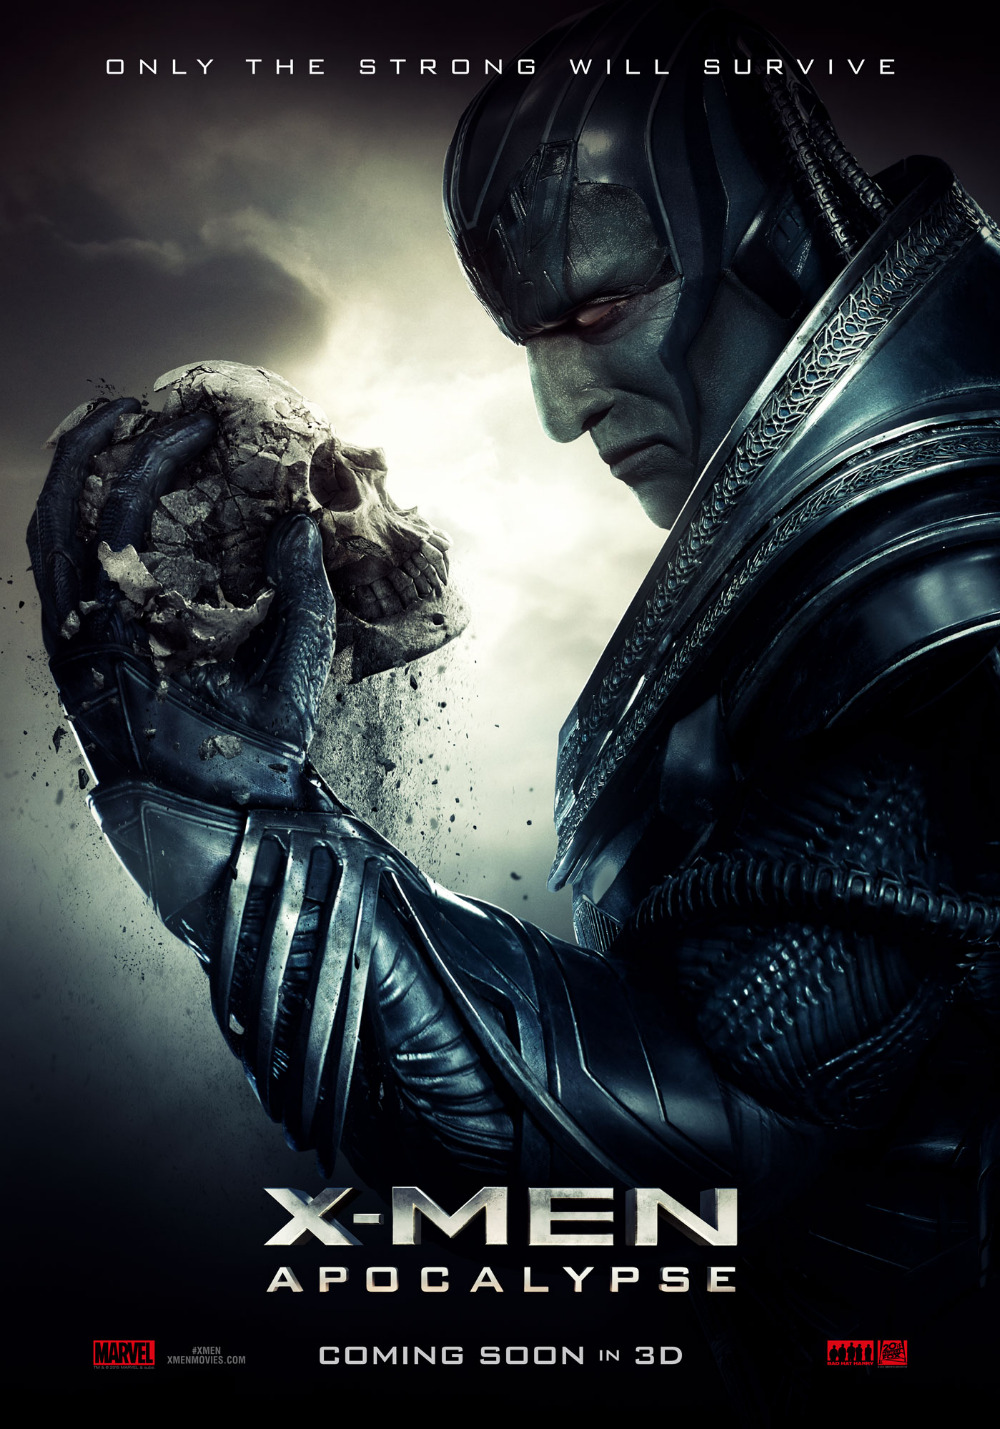 Custom-printed-HD-hot-sale-printing-Poster-X-Men-Apocalypse-font-b-Movie-b-font-poster